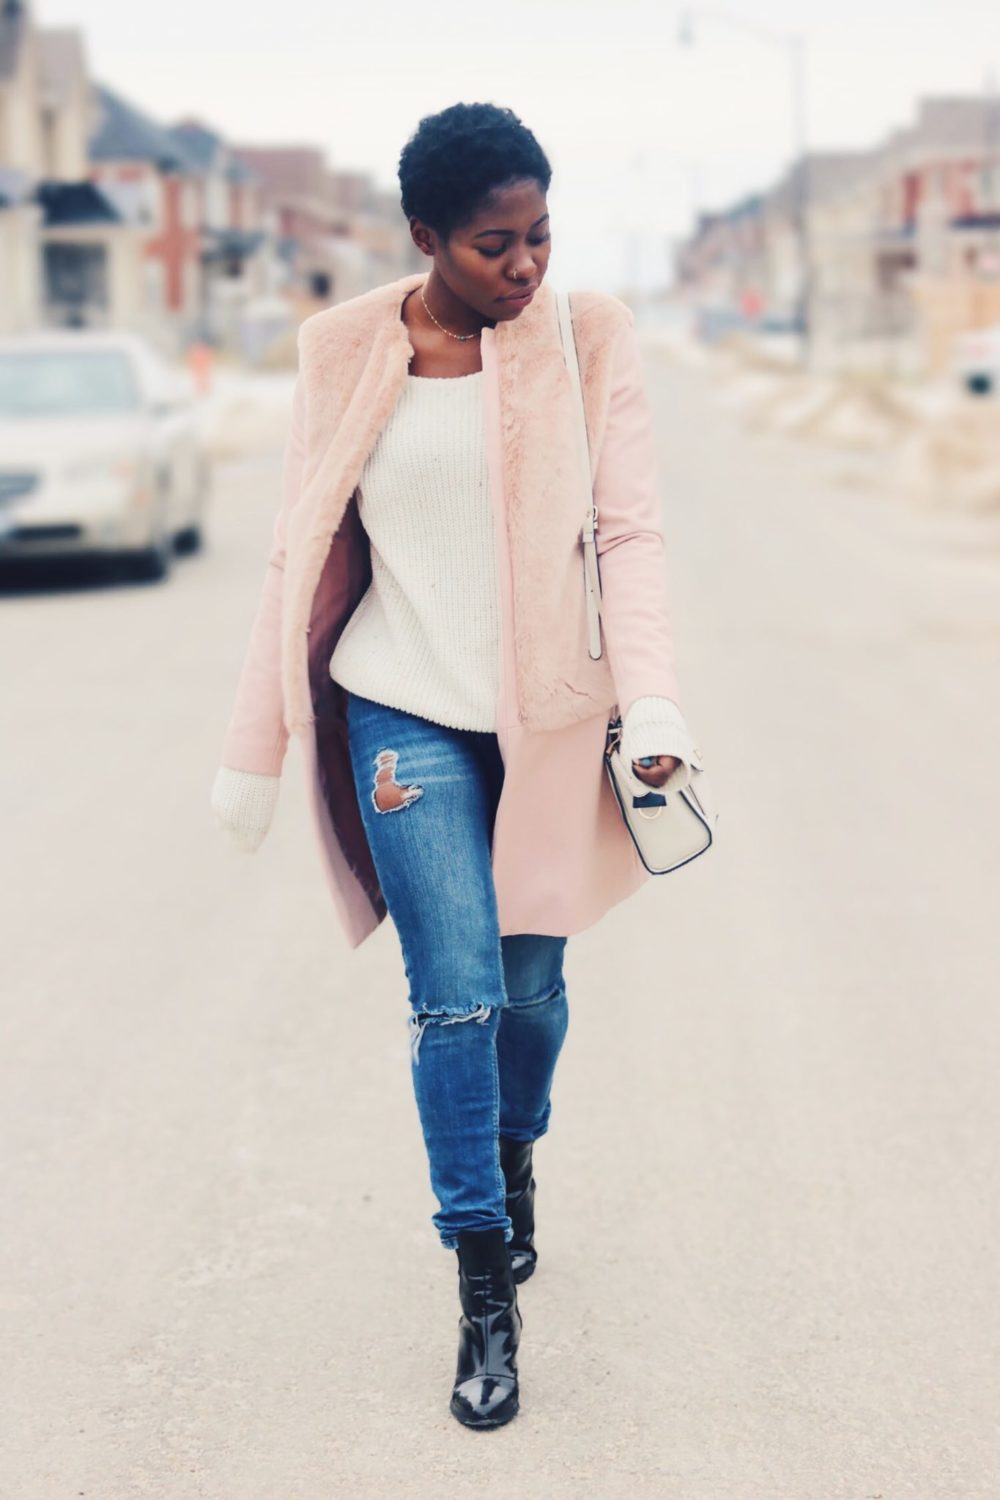 style-synopsis-denim-jeans-pink-coat